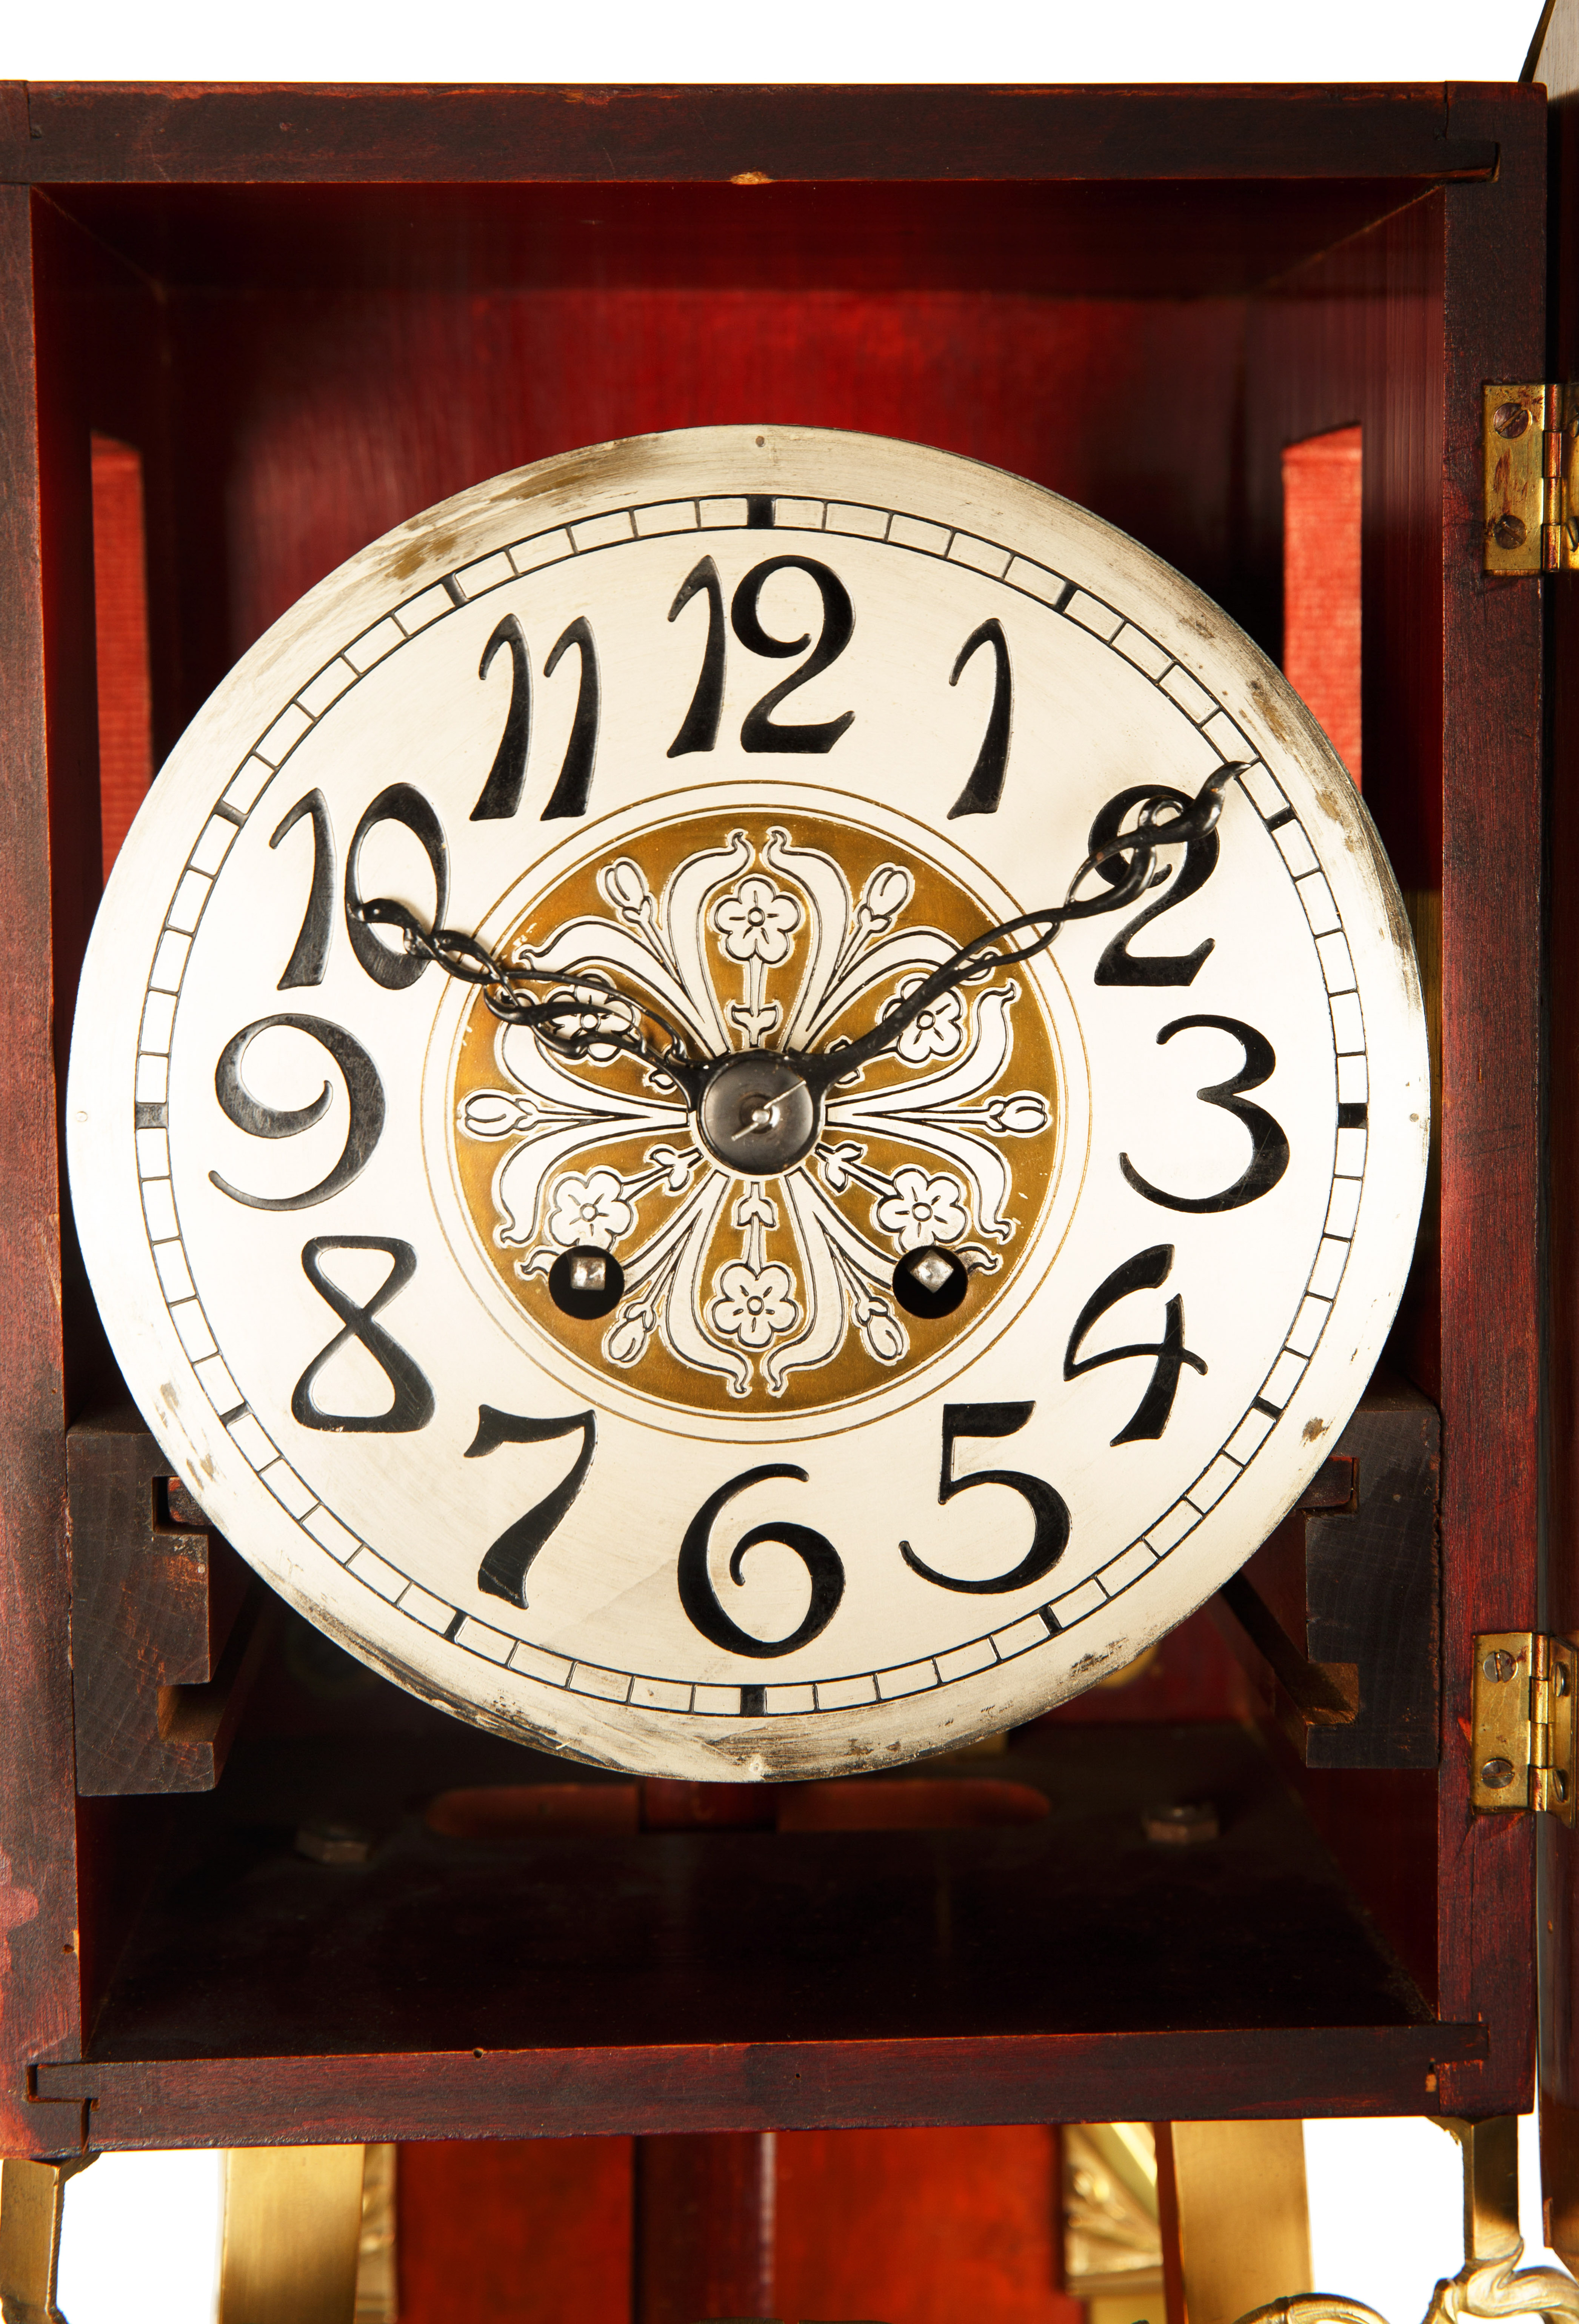 ART NOUVEAU STYLE WOOD AND BRASS GRANDFATHER CLOCK - Image 3 of 8